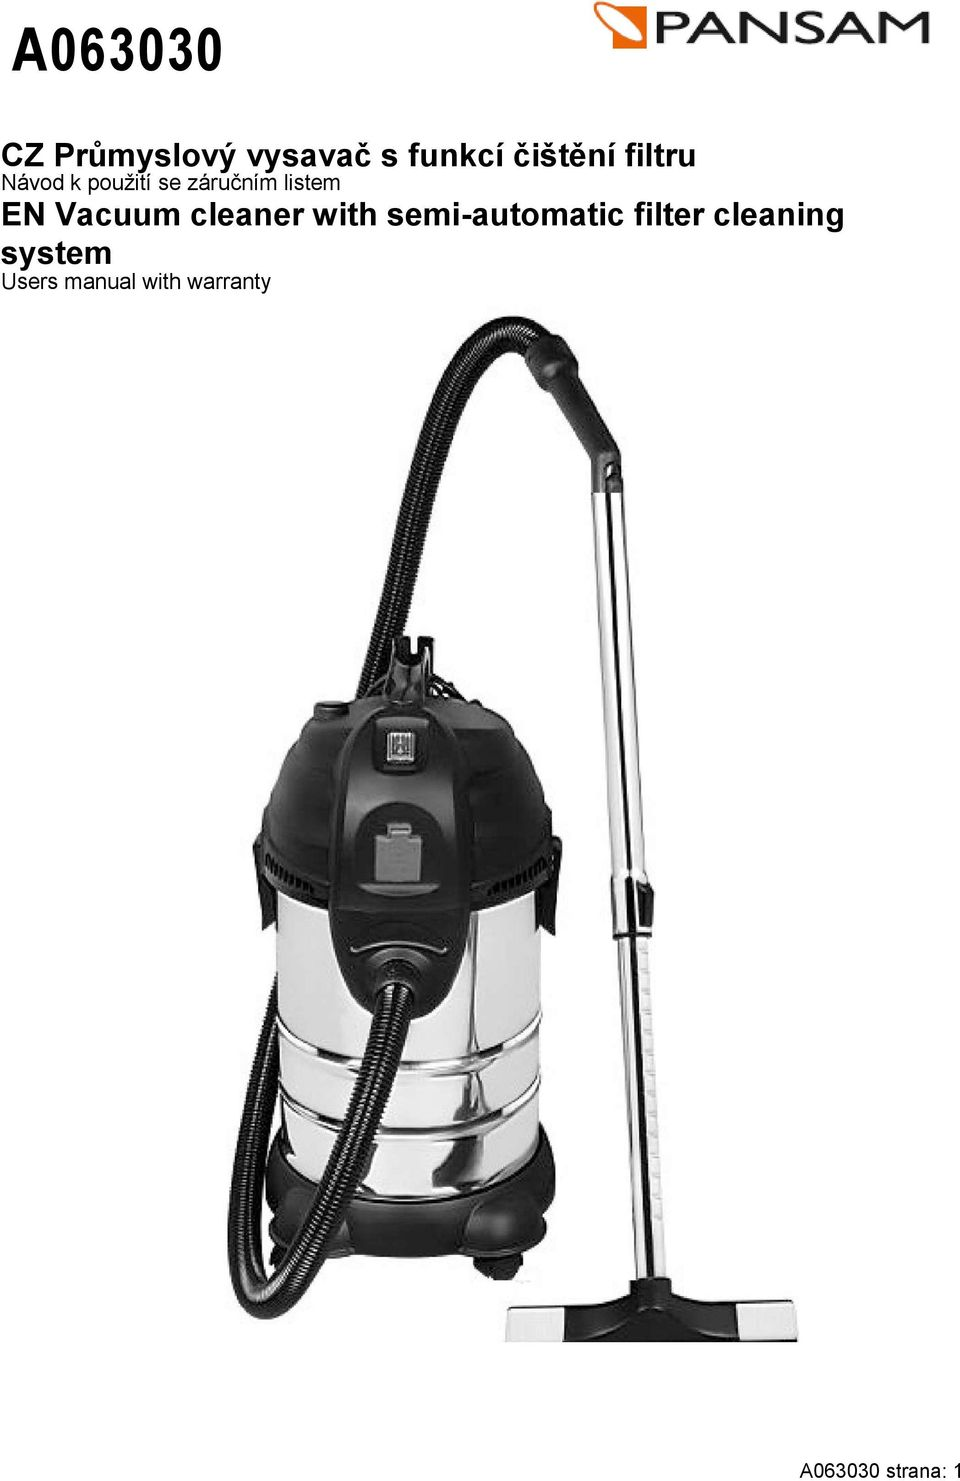 Vacuum cleaner with semi-automatic filter